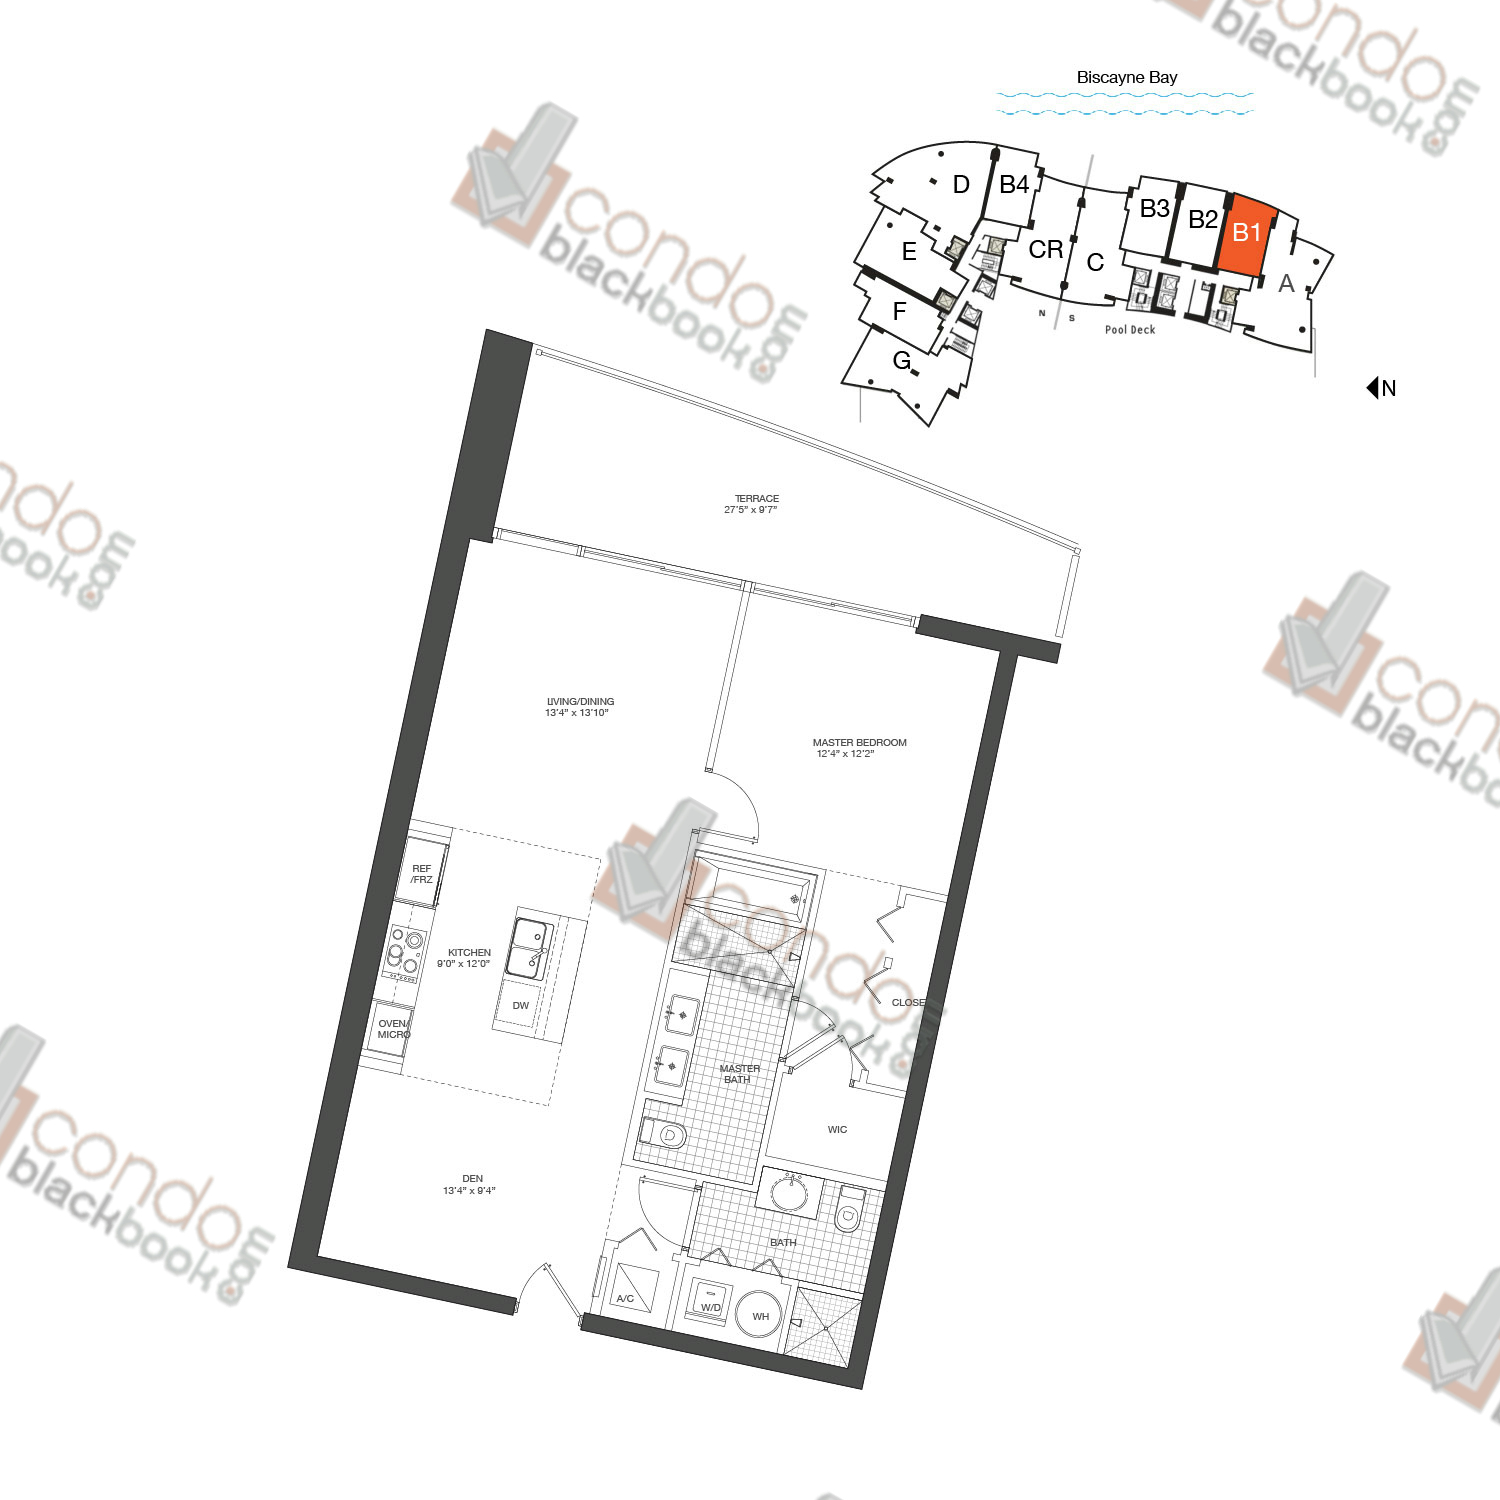 Floor plan for 900 Biscayne Bay Downtown Miami Miami, model Unit B1, line 03, 1/2+DEN bedrooms, 912 sq ft